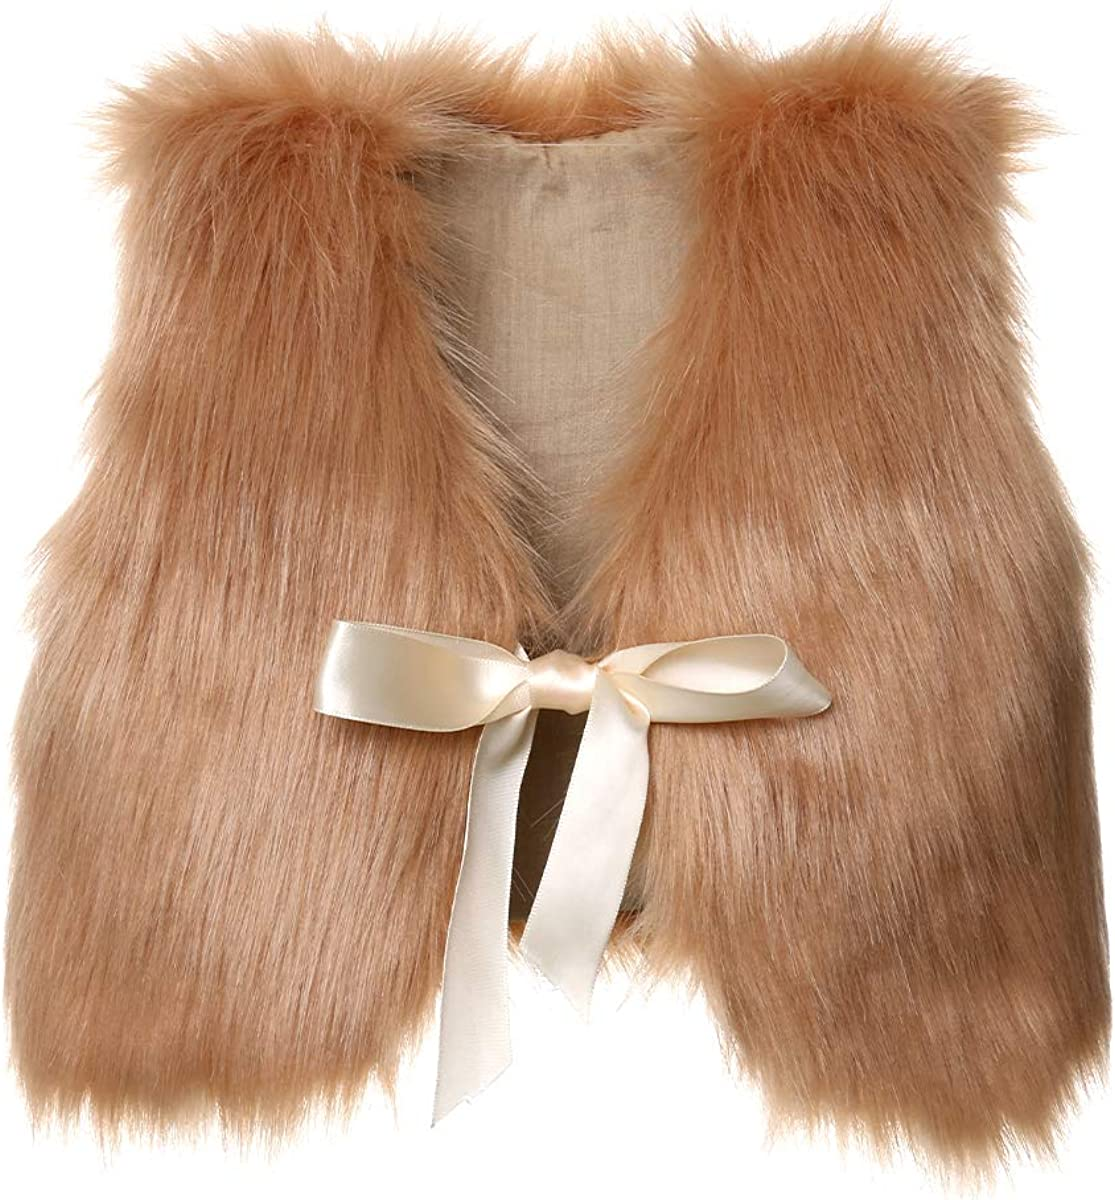 BAOSHI1 Kids Faux Fur Vest for Toddler Girl, Infant Baby Jacket Fall Winter Spring Warm Waistcoat Outerwear